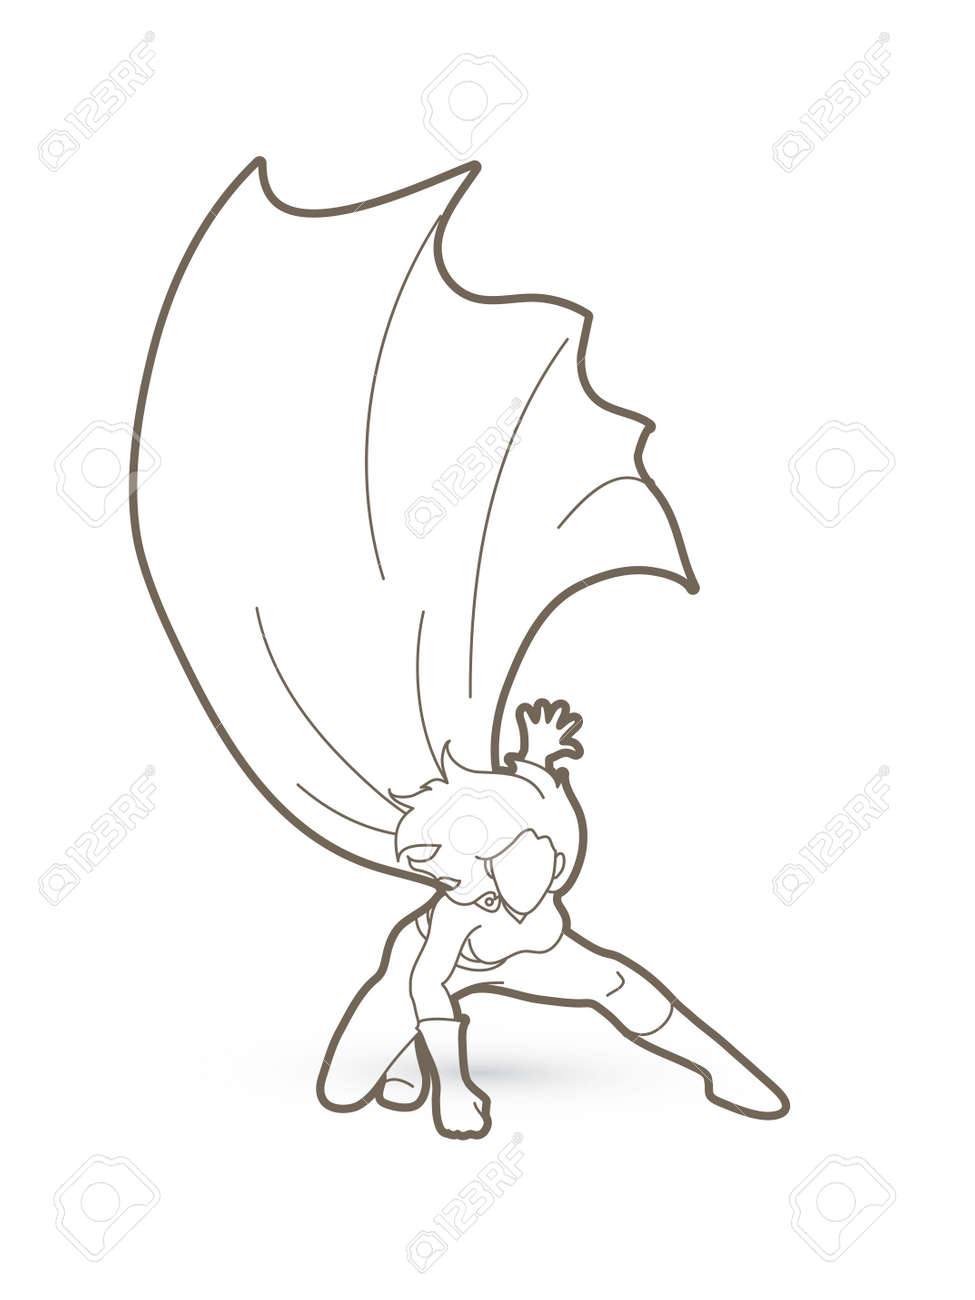 strong woman superhero landing powerful action outline graphic